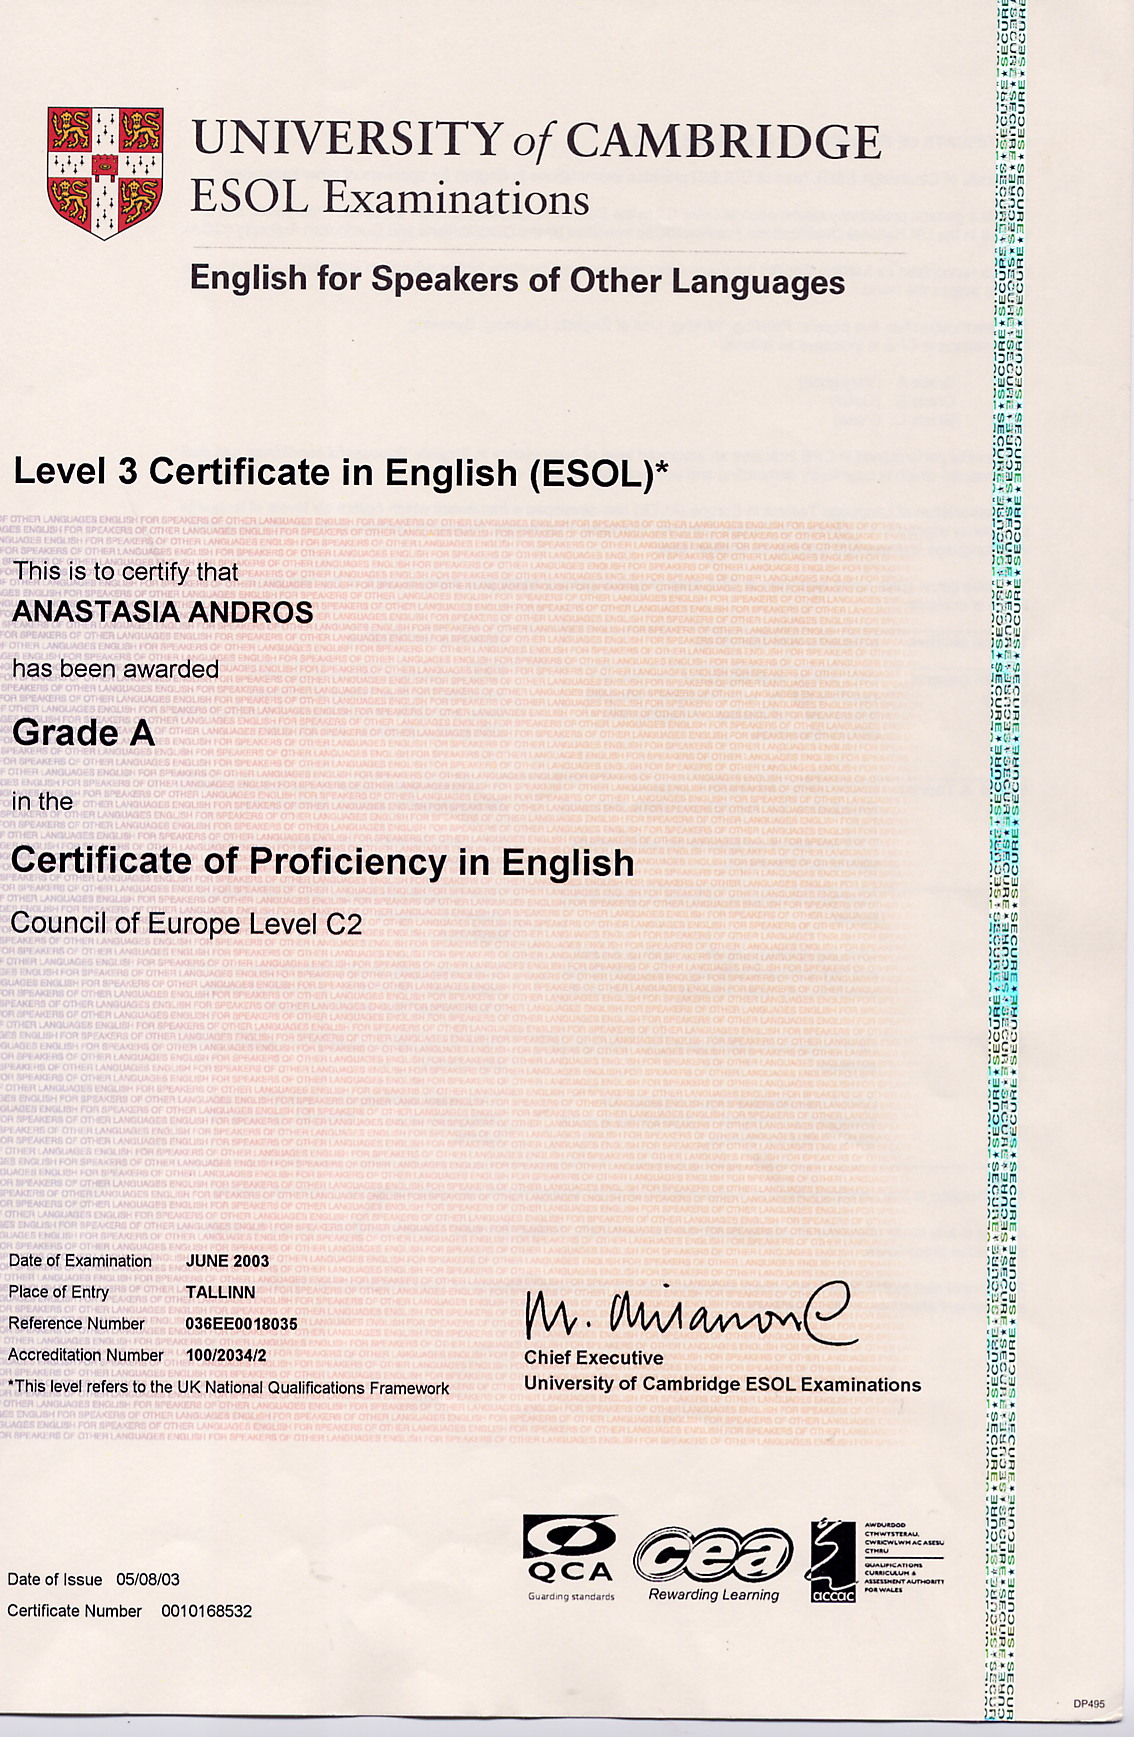 Certificate of Proficiency in English, Anastasia Andros, Grade A